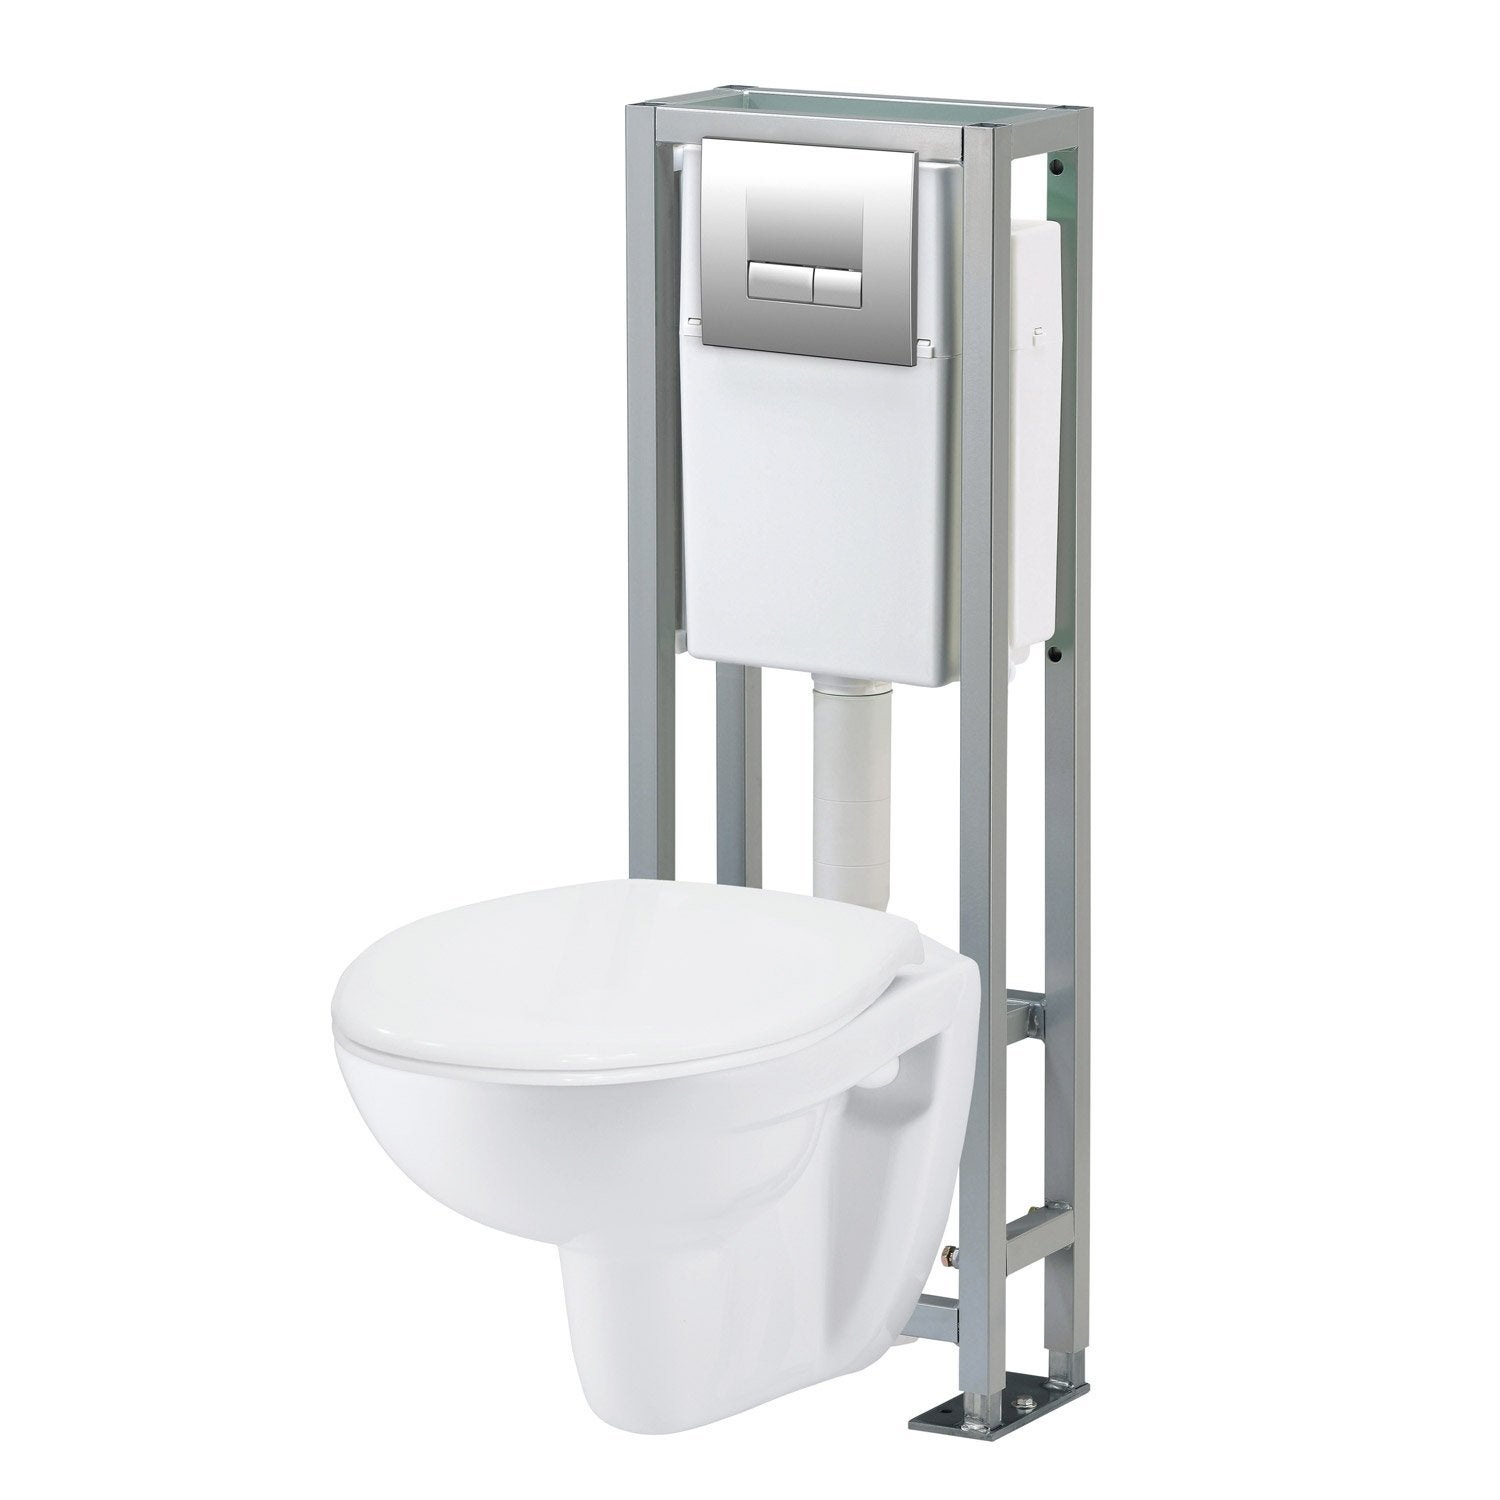 Bati wc suspendu pas cher - Pack toilette suspendu ...